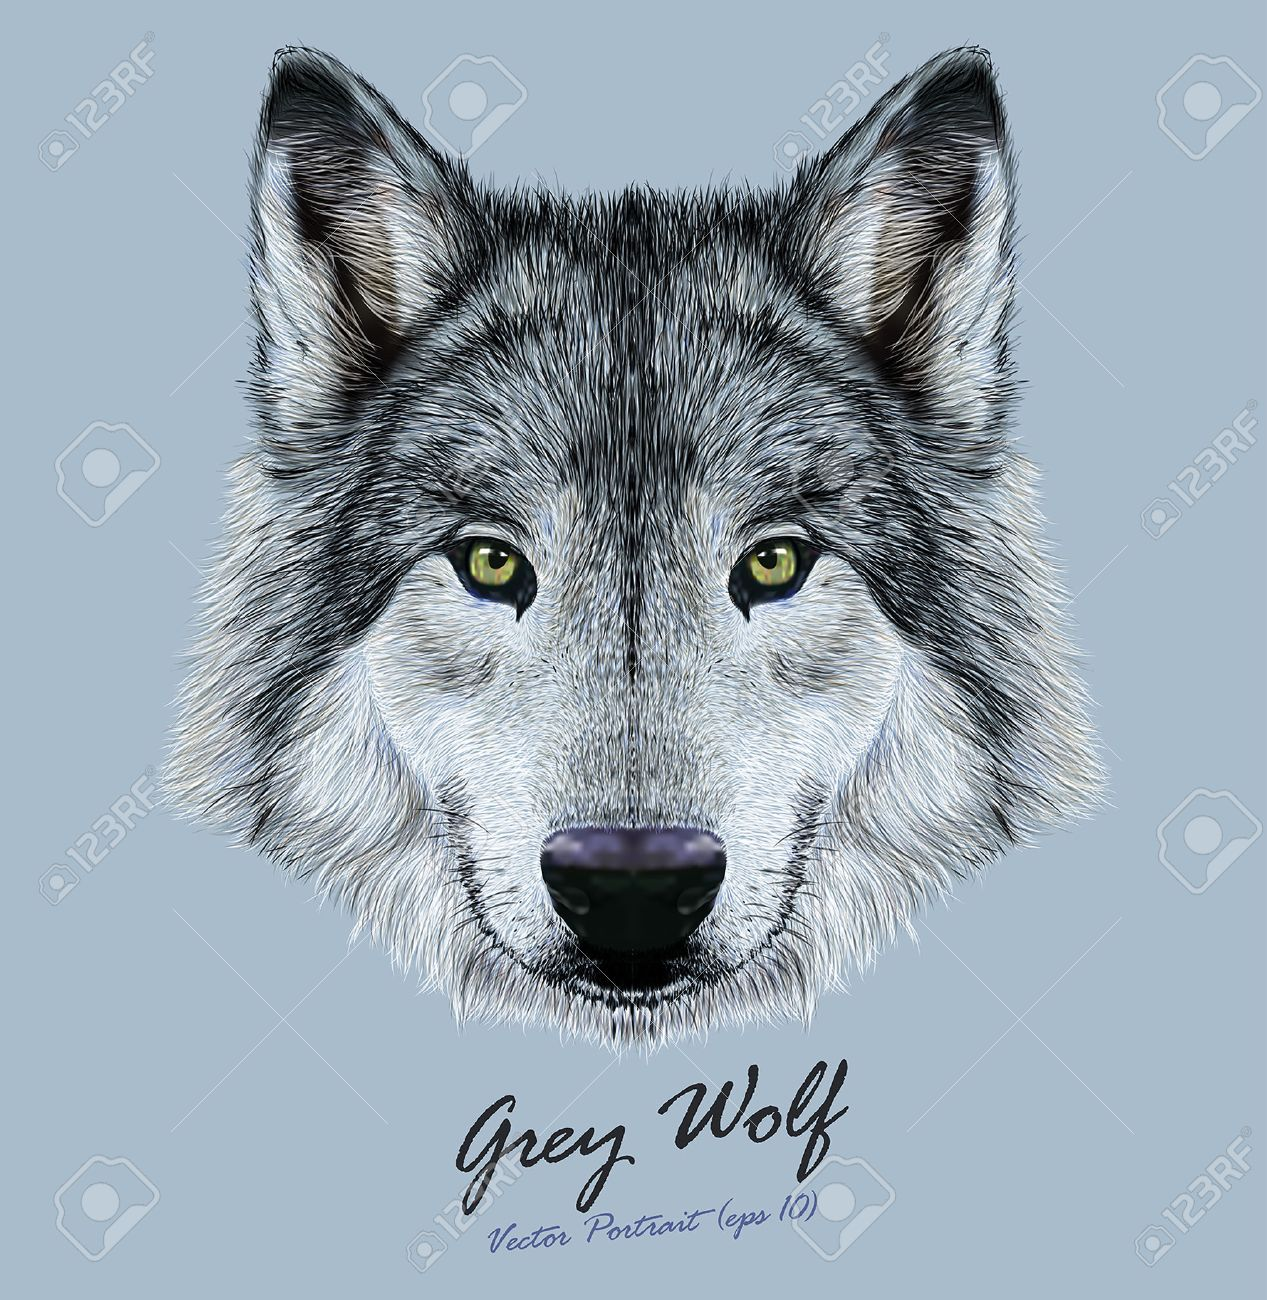 Vector Illustrative Portrait of Wolf. Beautiful gazing face of Gray Wolf with green eyes. - 44302972